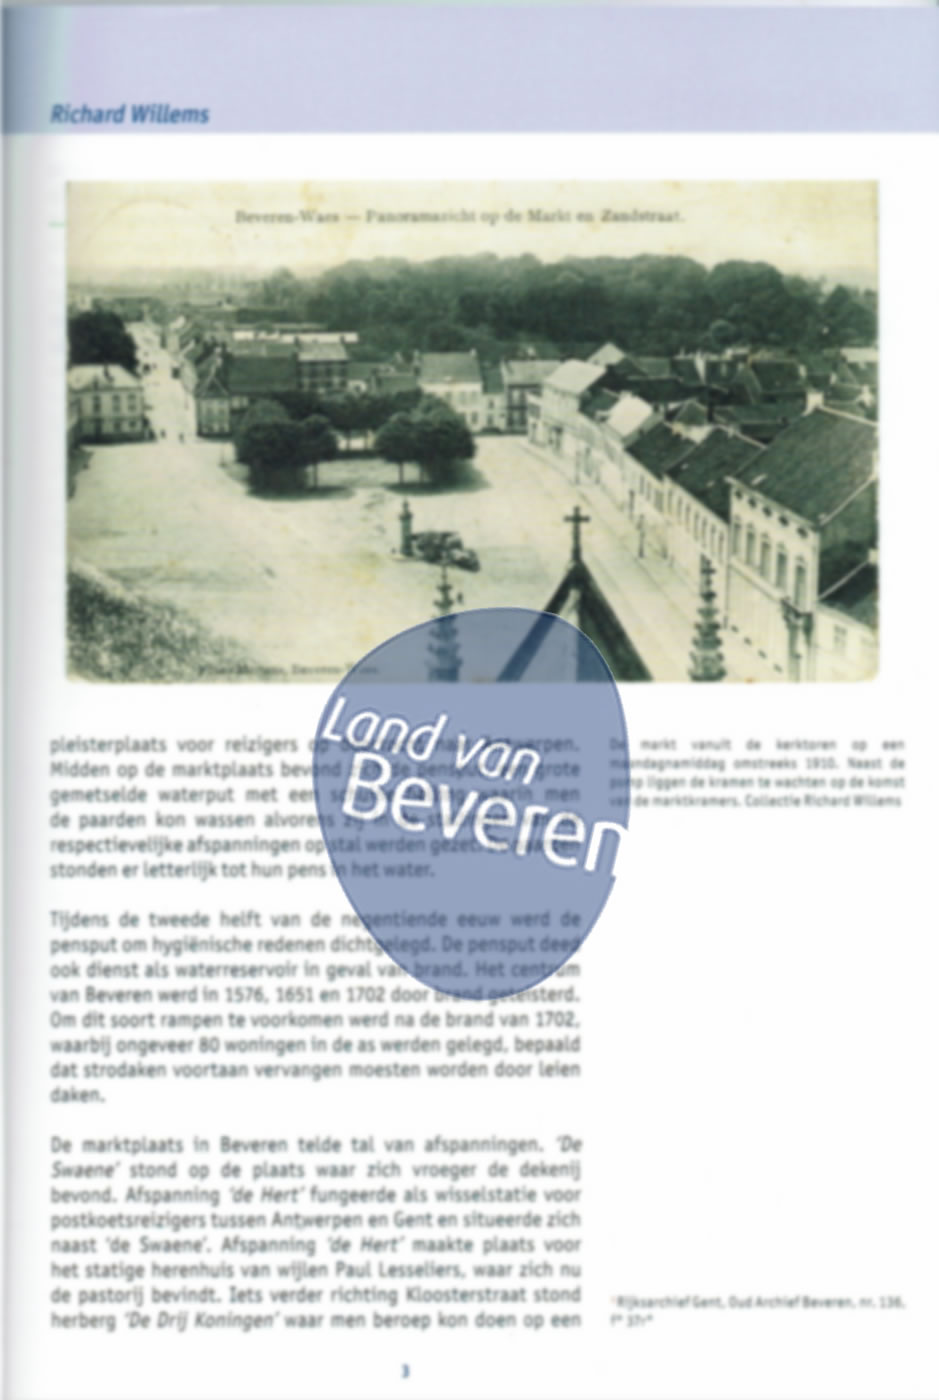 Cover of Over de Beverse Markt.